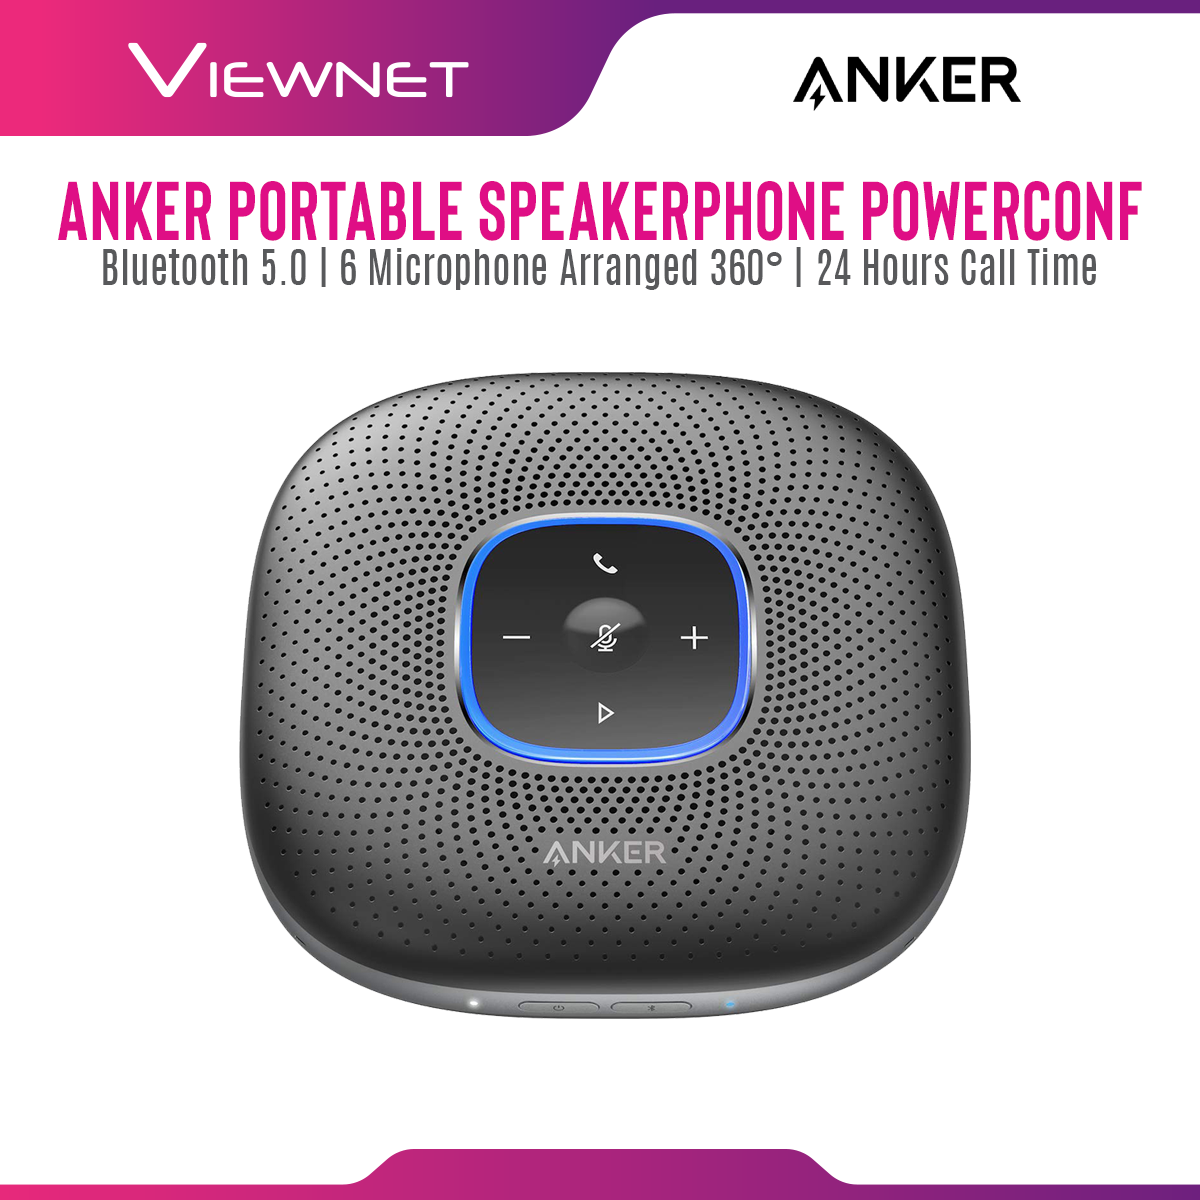 Anker Portable Wireless Bluetooth Speakerphone A3301 Powerconf with 6 Microphone Arrange 360°, DSP Reduces Ambient Noise, PowerIQ Technology, 24 Hours Call Time Lightweight and Compact